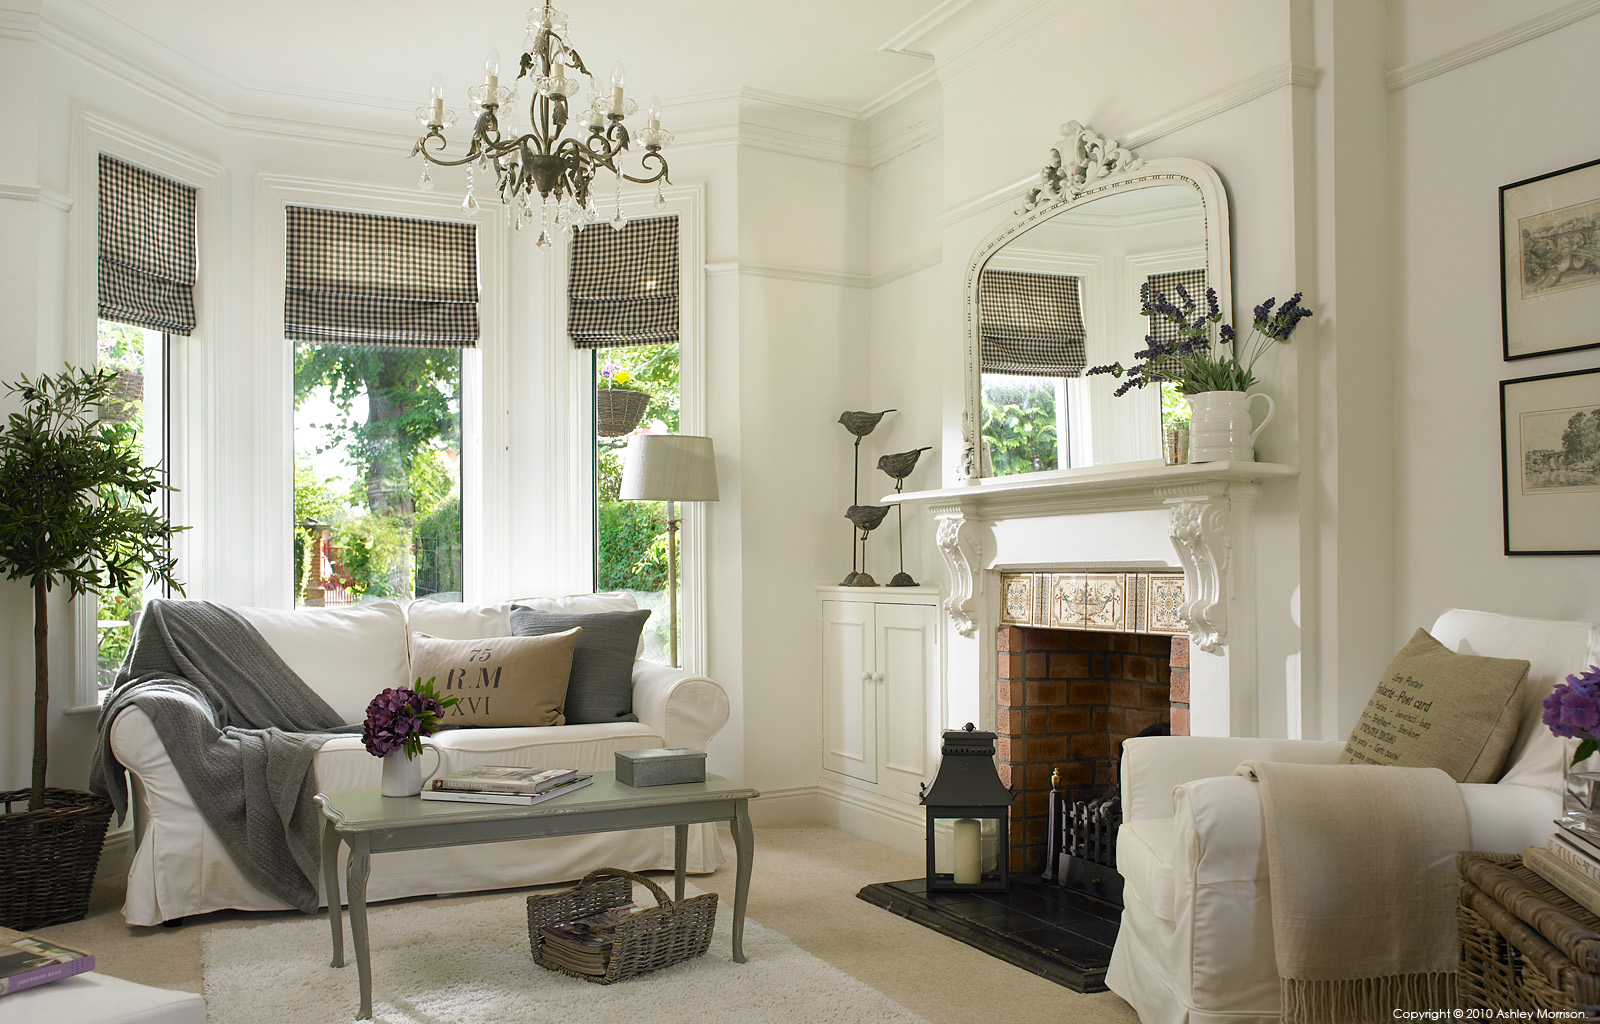 The living room in Marie and Alan McMillen's 1920's semi detached house in the tree-lined Cherryvalley area of Belfast.